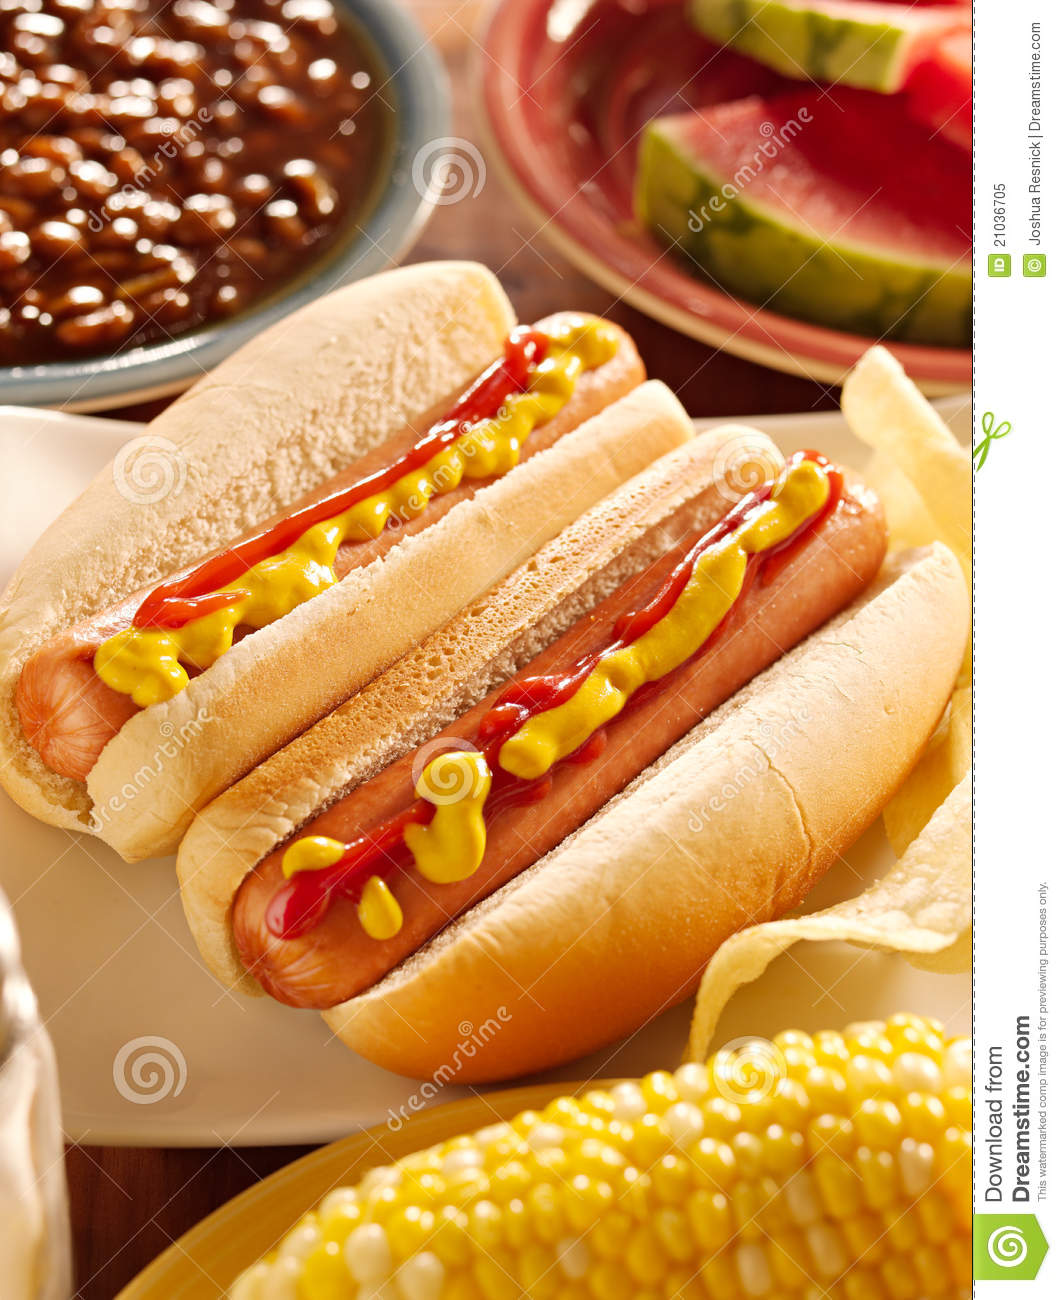 meal with hot dogs stock image image of ketchup sausage. Black Bedroom Furniture Sets. Home Design Ideas